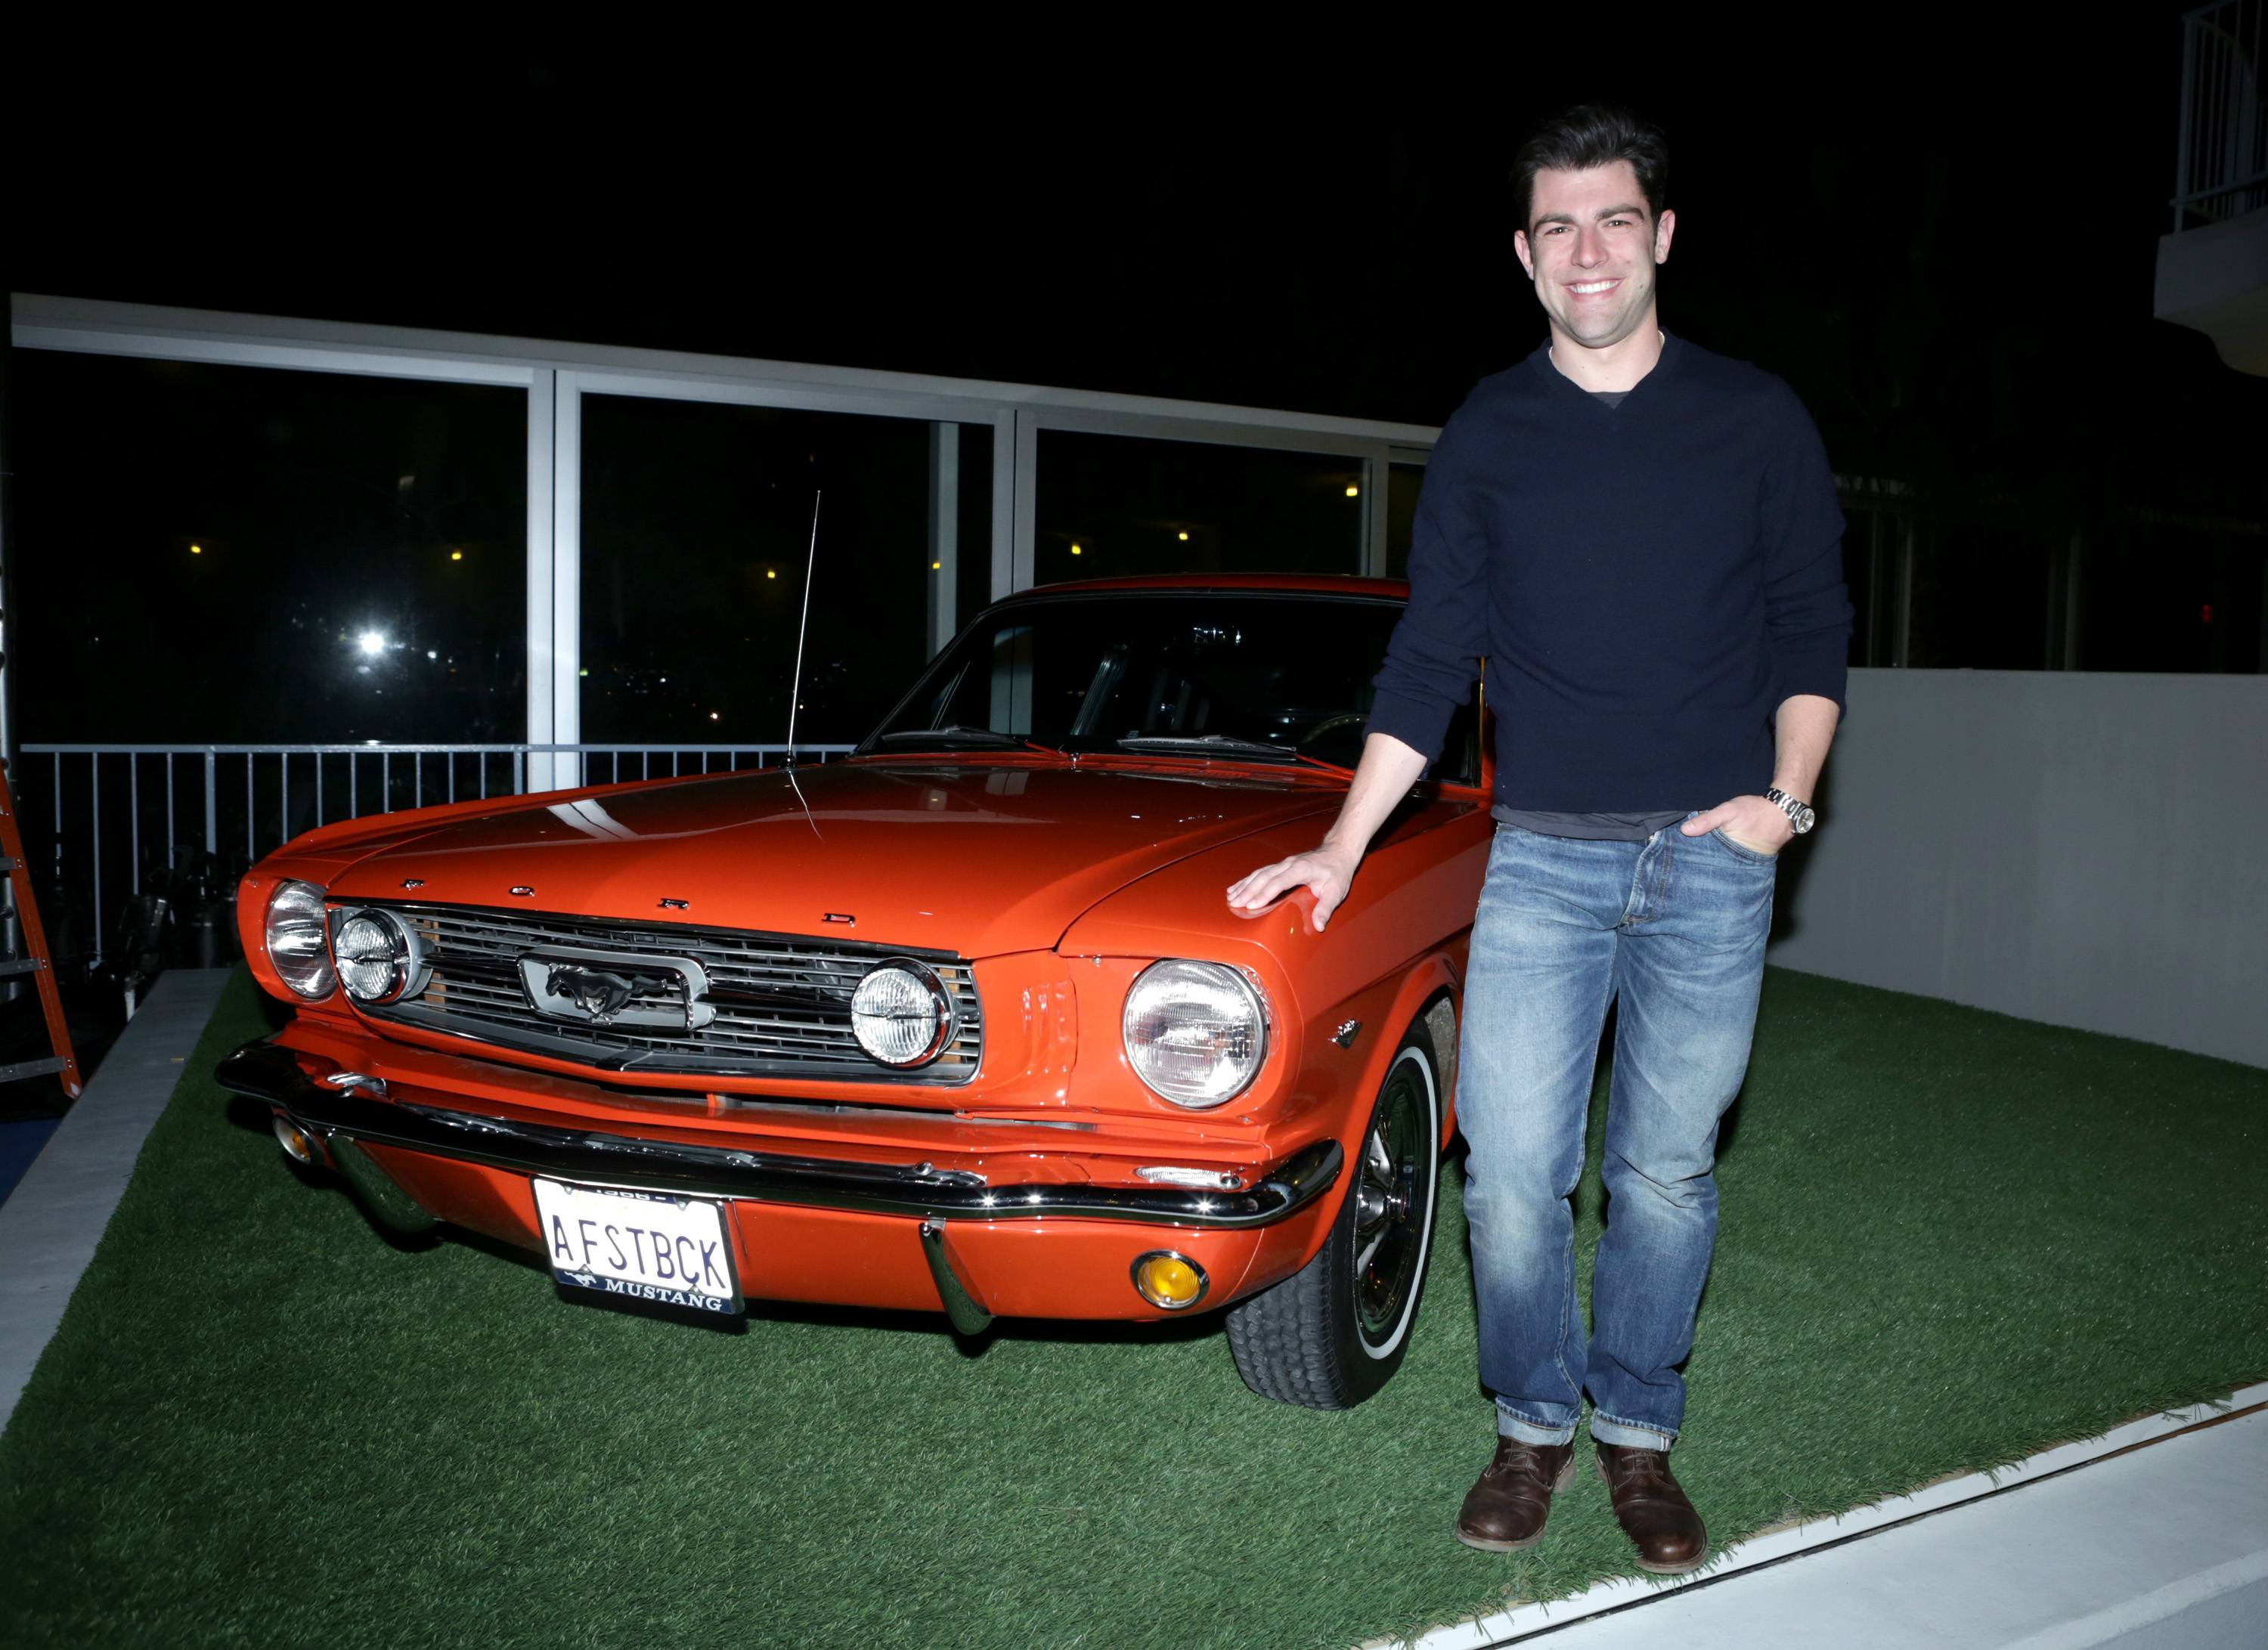 Ford Motor Company And Decades LA Explore Five Decades Of The Mustang, Music And Iconic Fashion